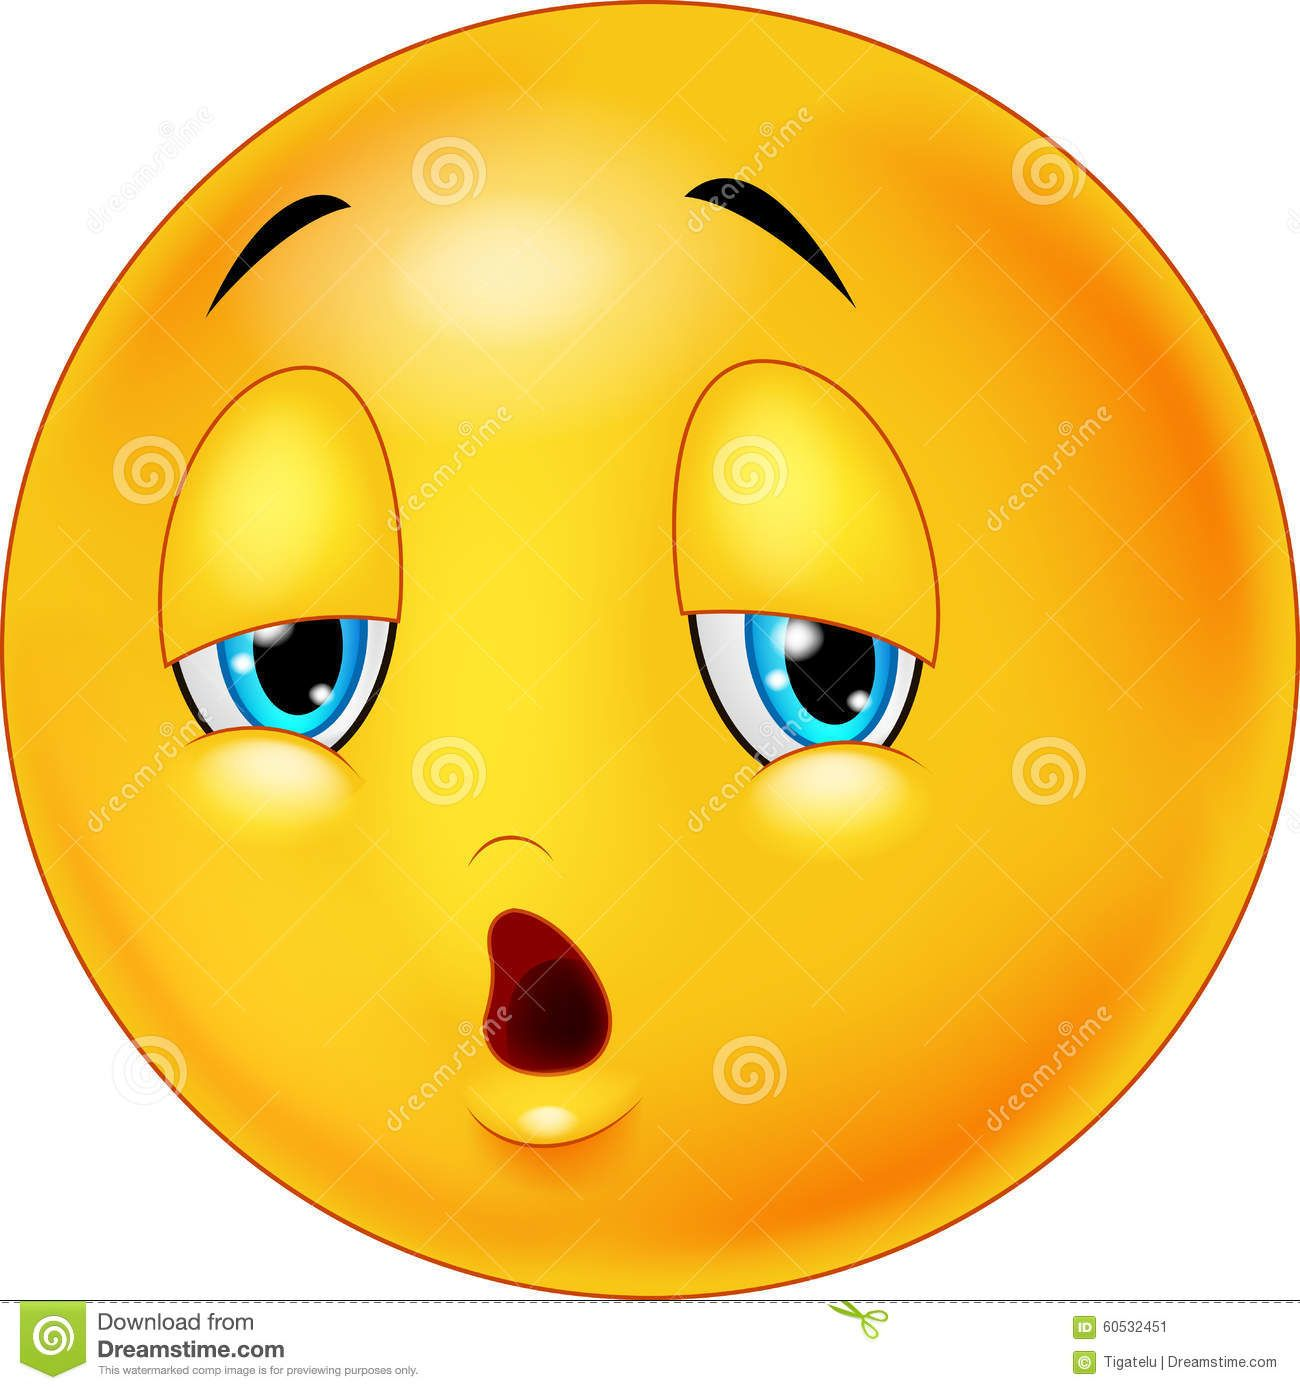 Exhausted And Tired Emoticon On Background Emoticon Smiley Emoji Pictures